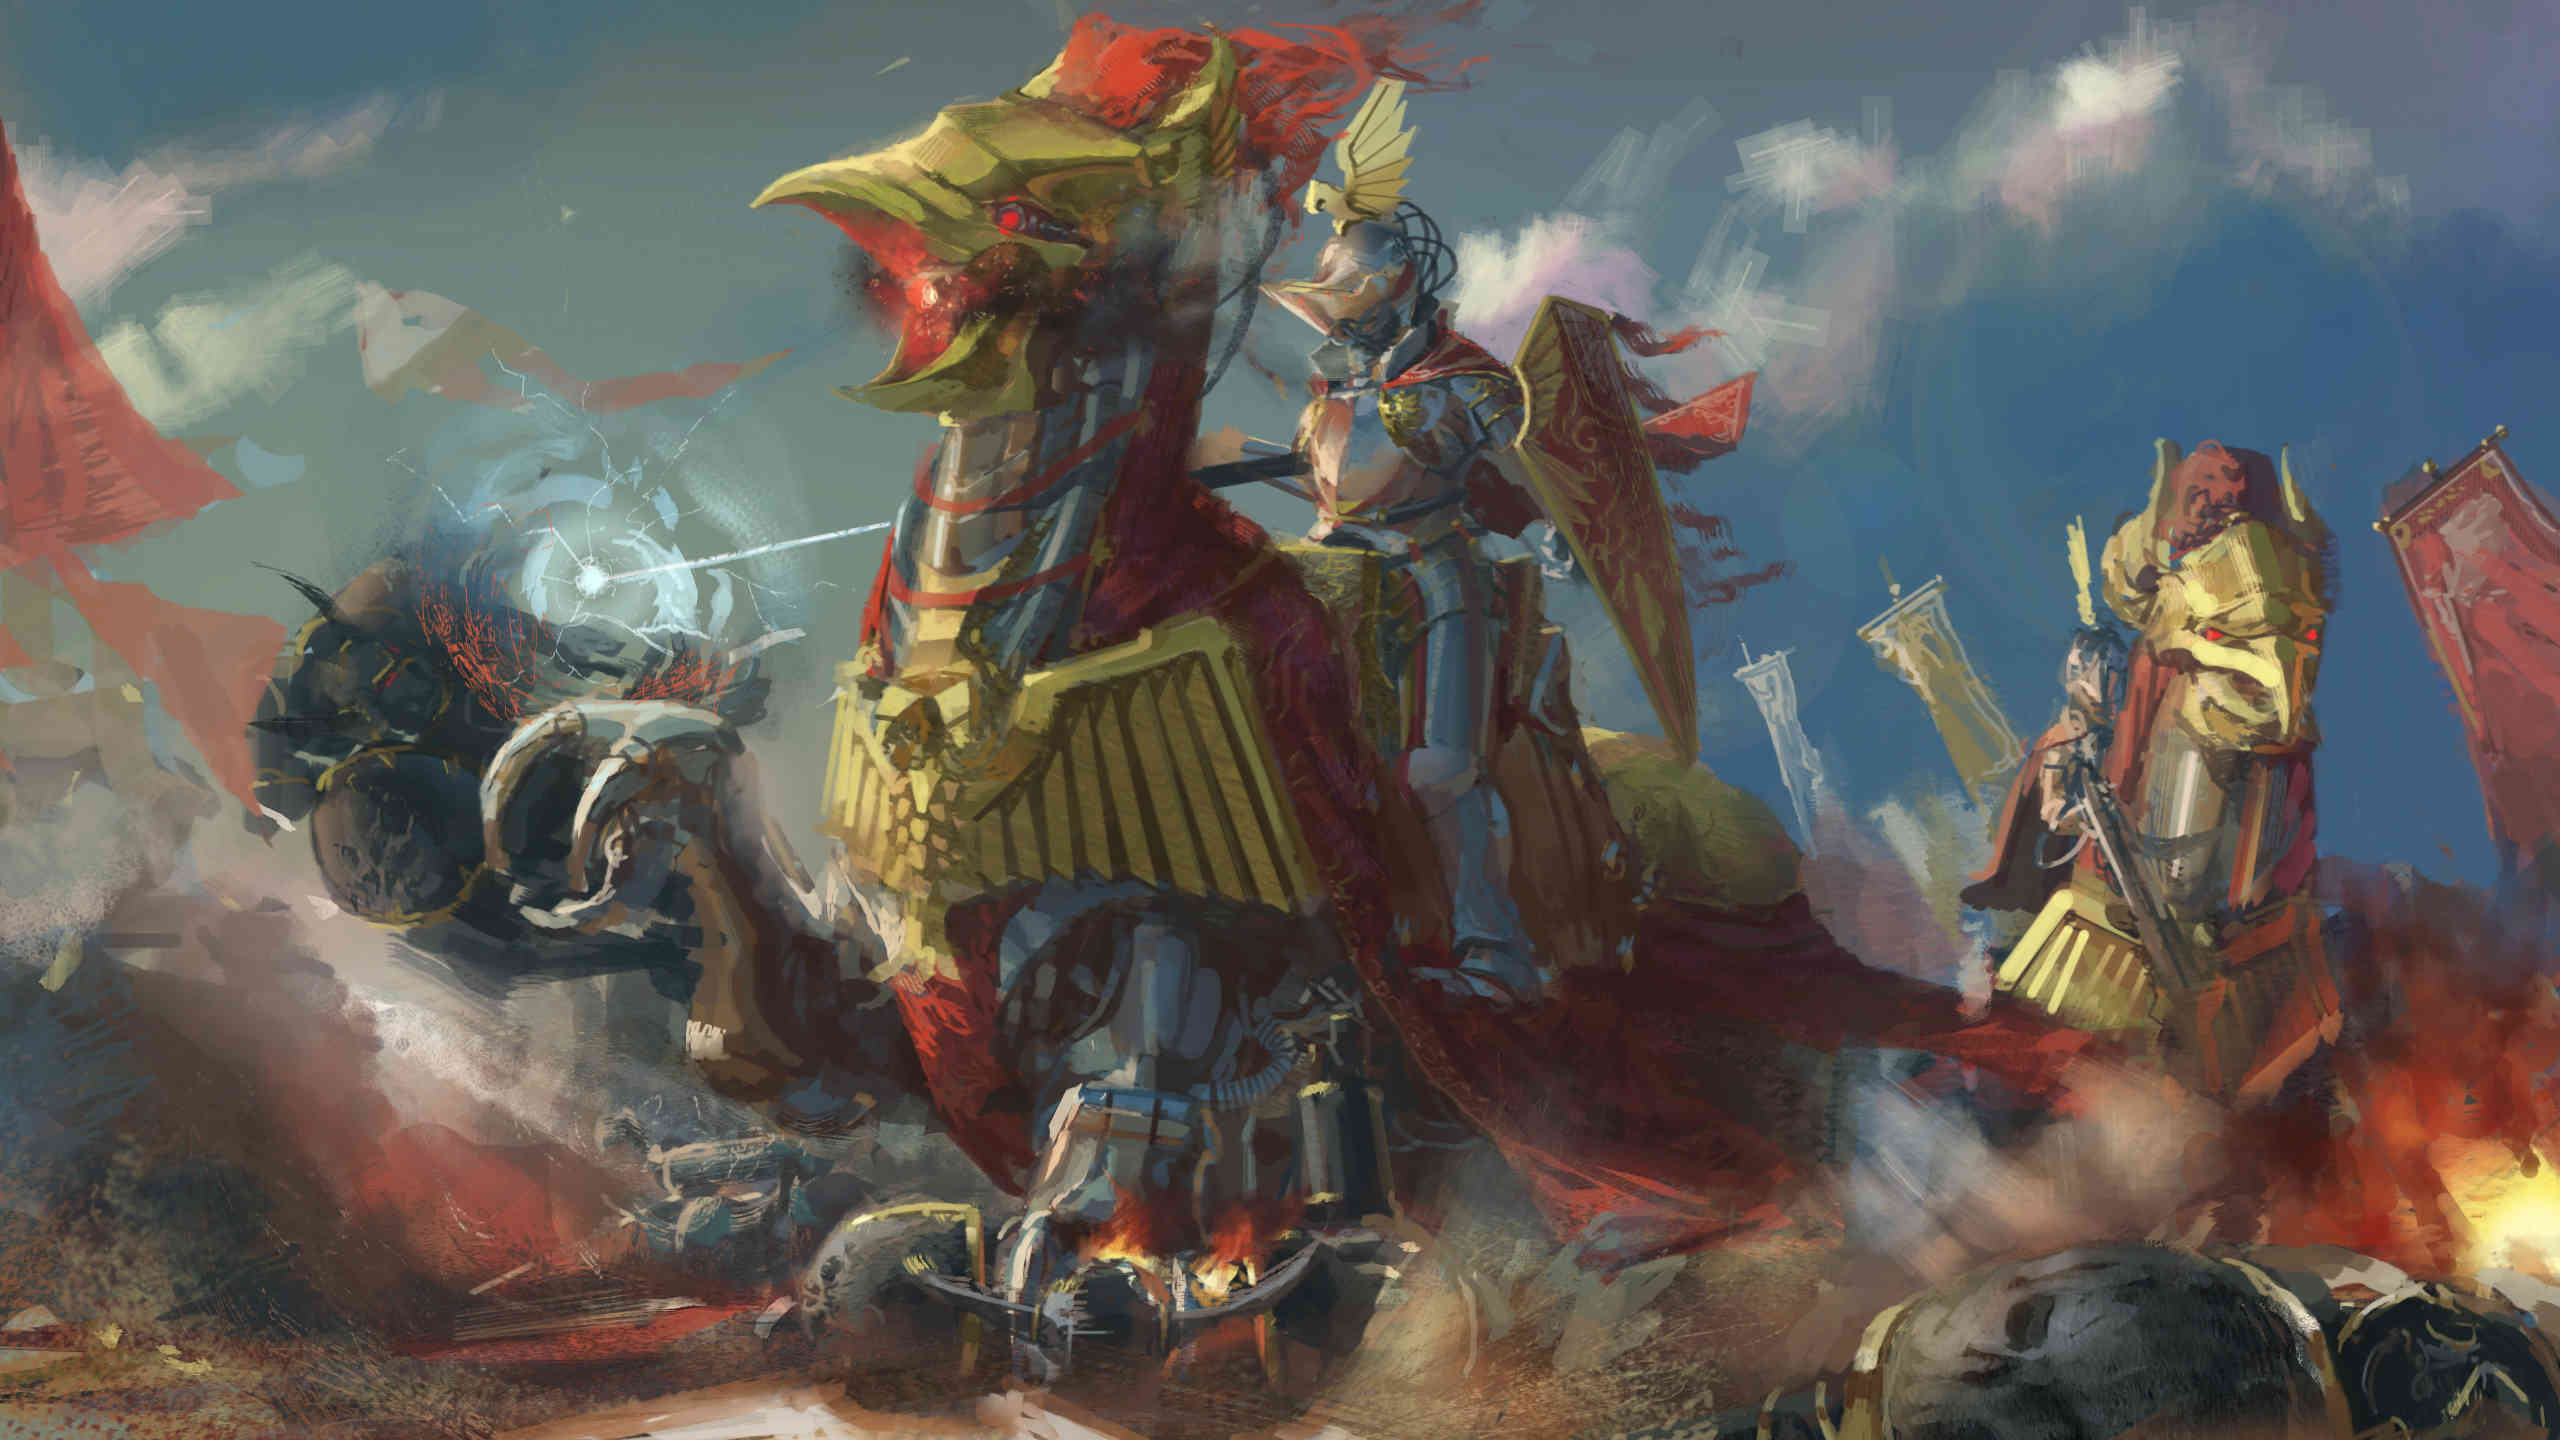 [W40K] Collection d'images : Warhammer 40K divers et inclassables - Page 9 426d5610